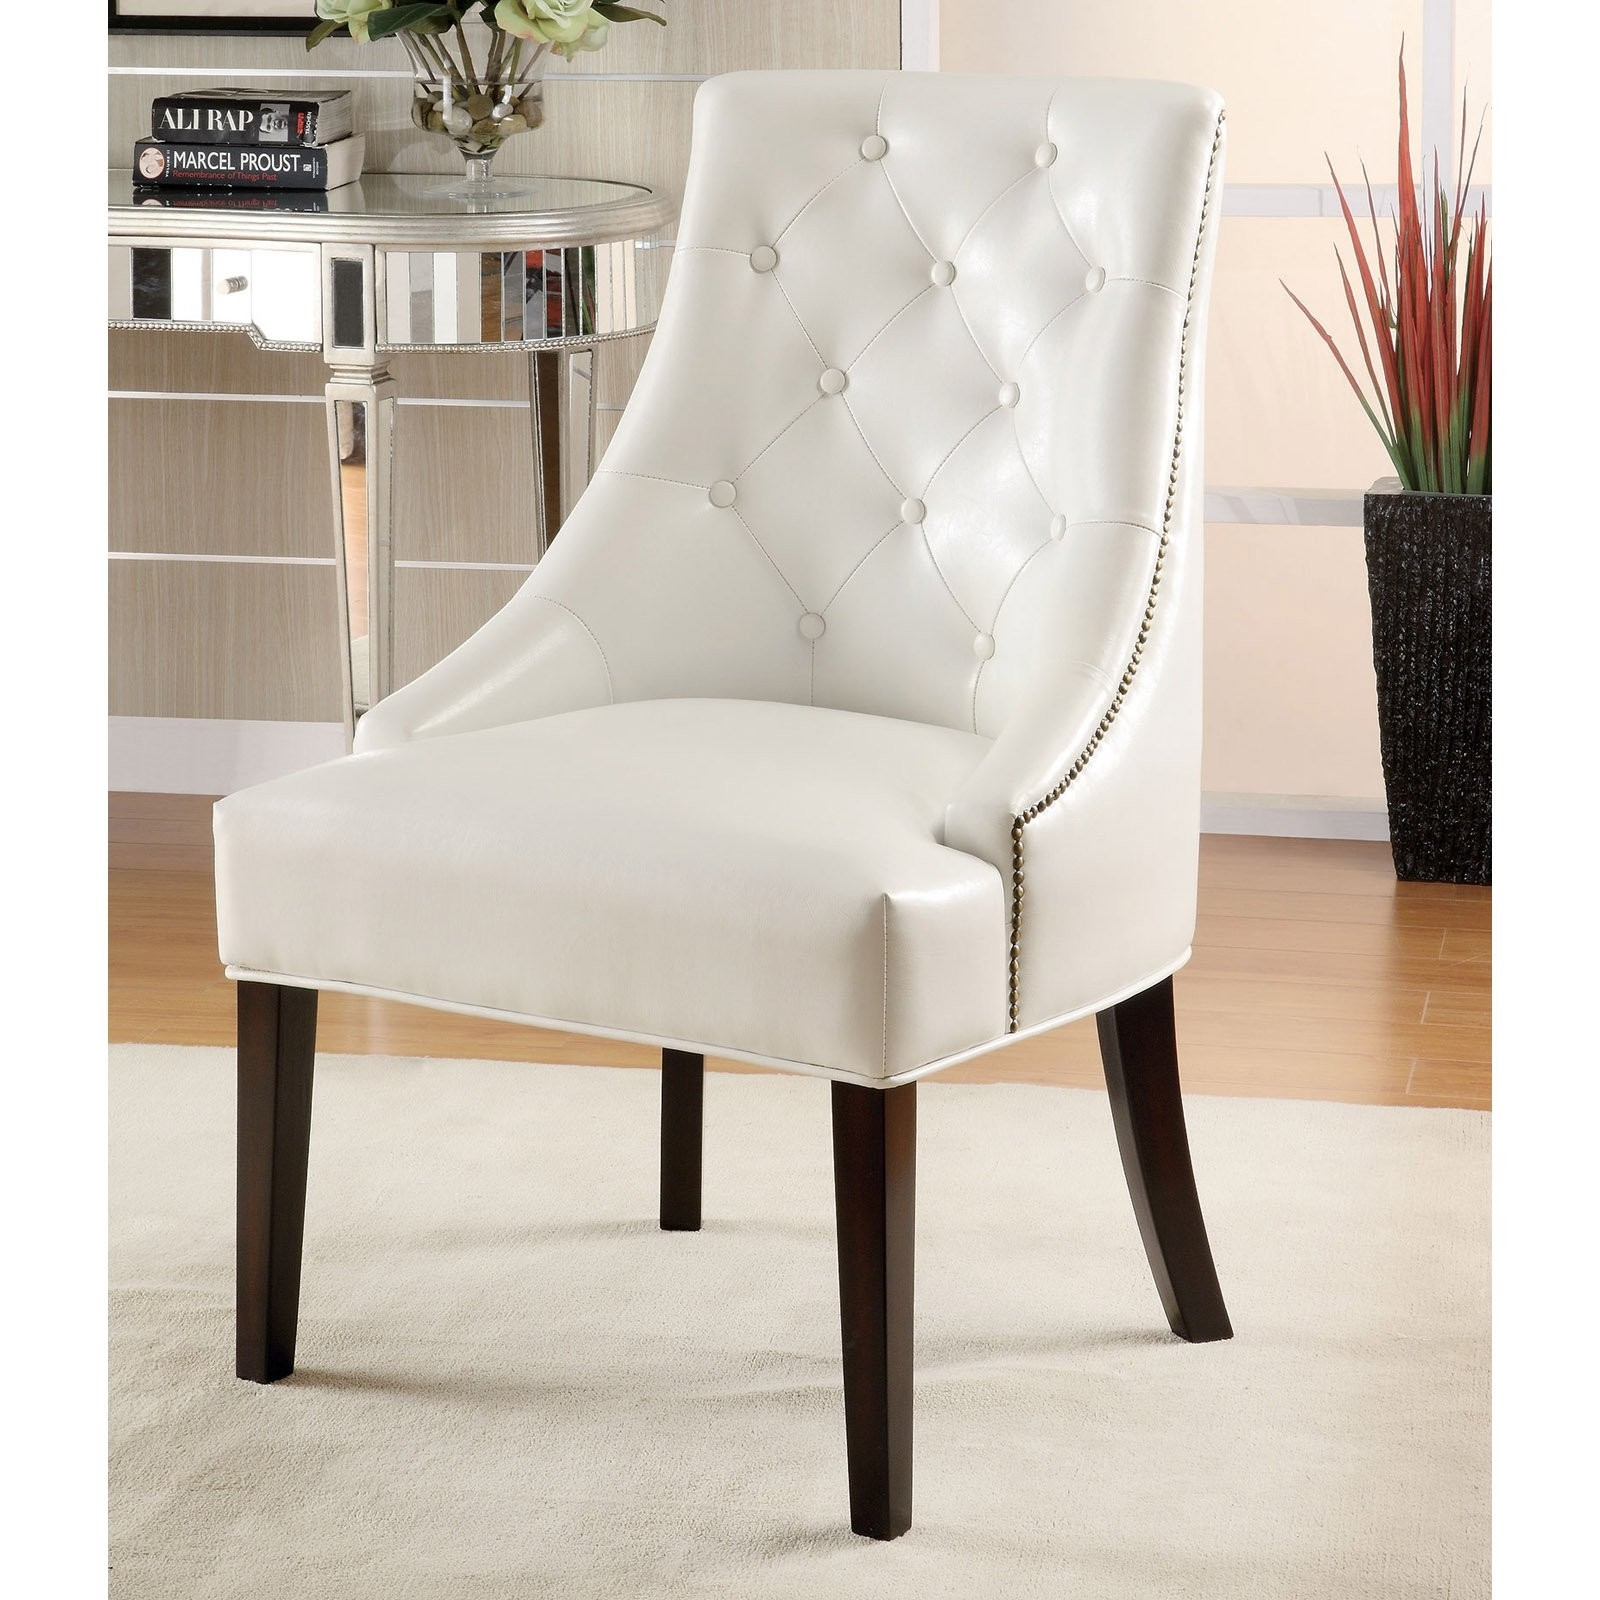 white bedroom chair mima moon high review tufted arm chairs ideas on foter coaster leather like lounge in finish